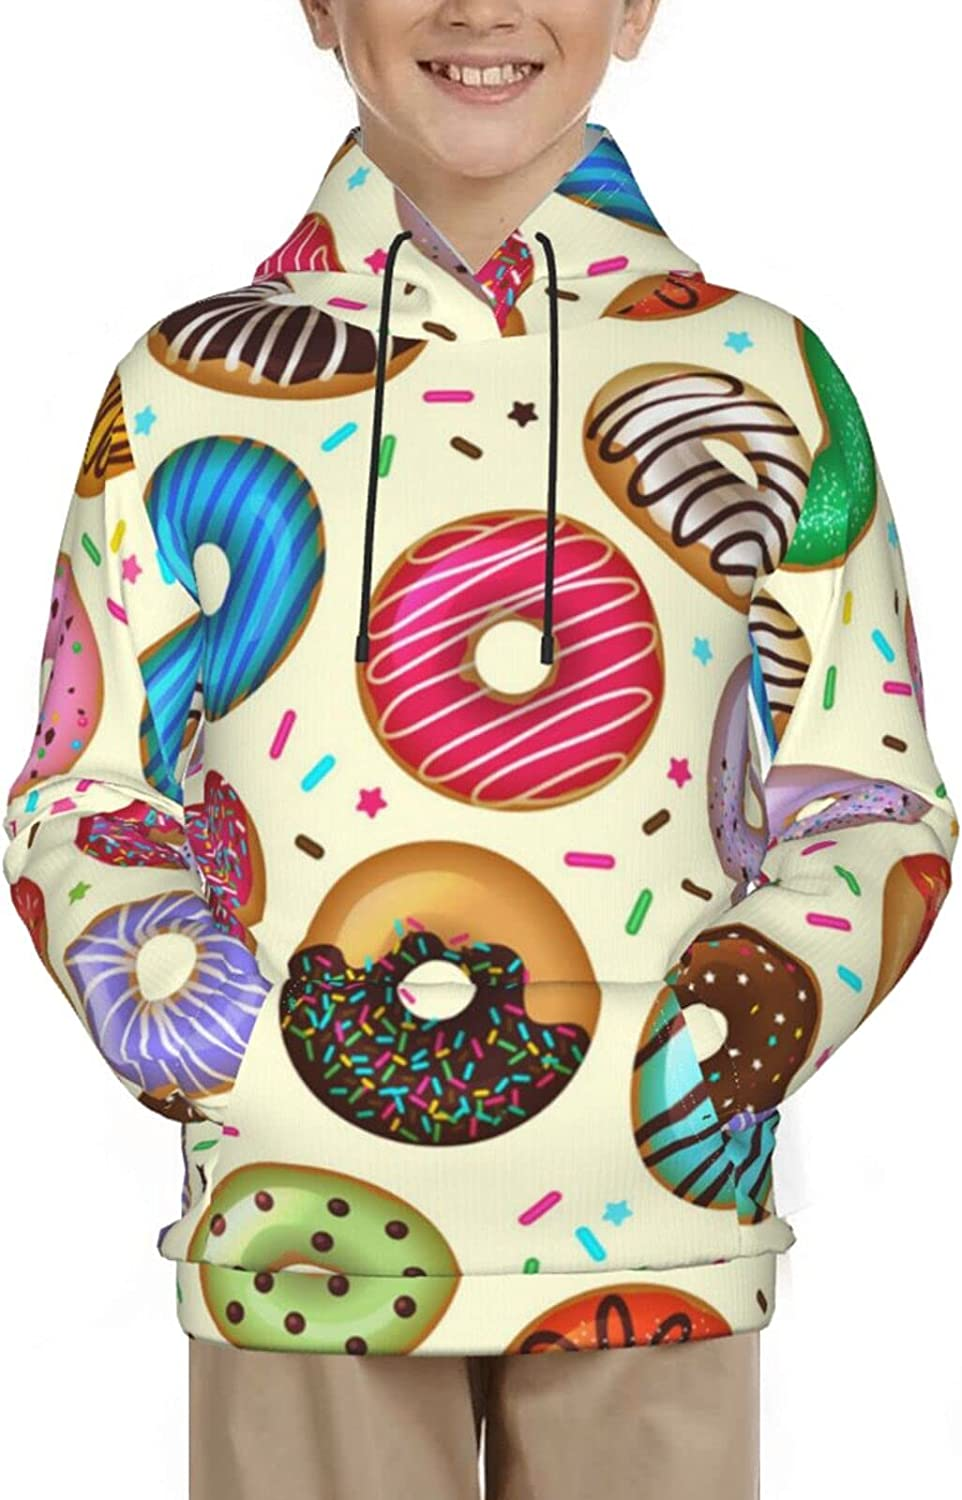 Cute Colorful Donuts Hoodies, Fashion 3D Print Sweatshirts, with Pocket Long Sleeves Pullover, for Boys Girls